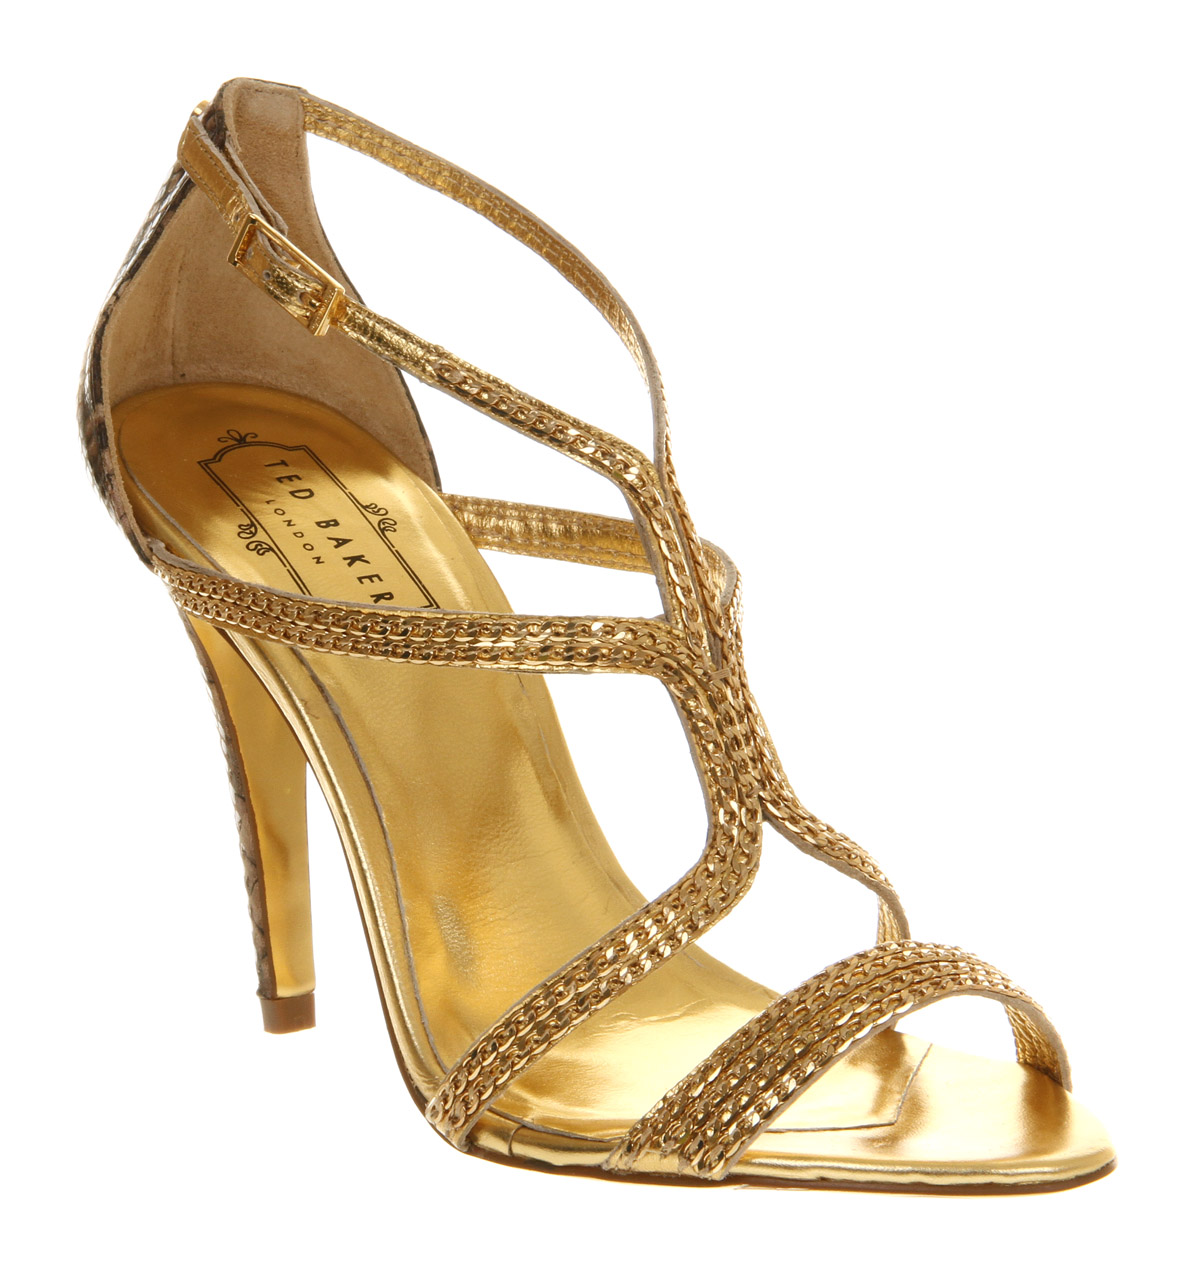 ted baker tilbey high heel sandal in gold snake lyst. Black Bedroom Furniture Sets. Home Design Ideas